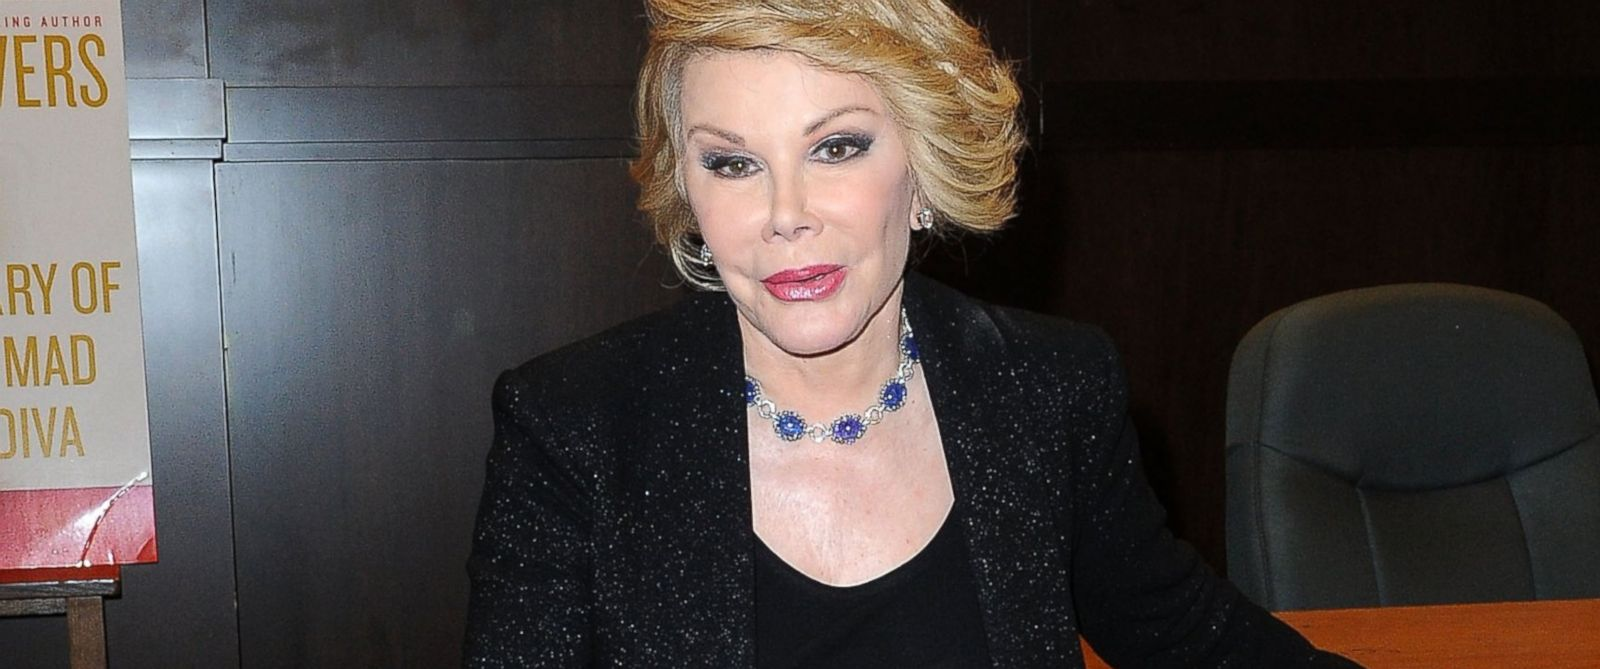 "Joan Rivers attends her book signing for ""Diary Of A Mad Diva"" at Barnes & Noble bookstore on July 10, 2014 in Los Angeles, Calif."